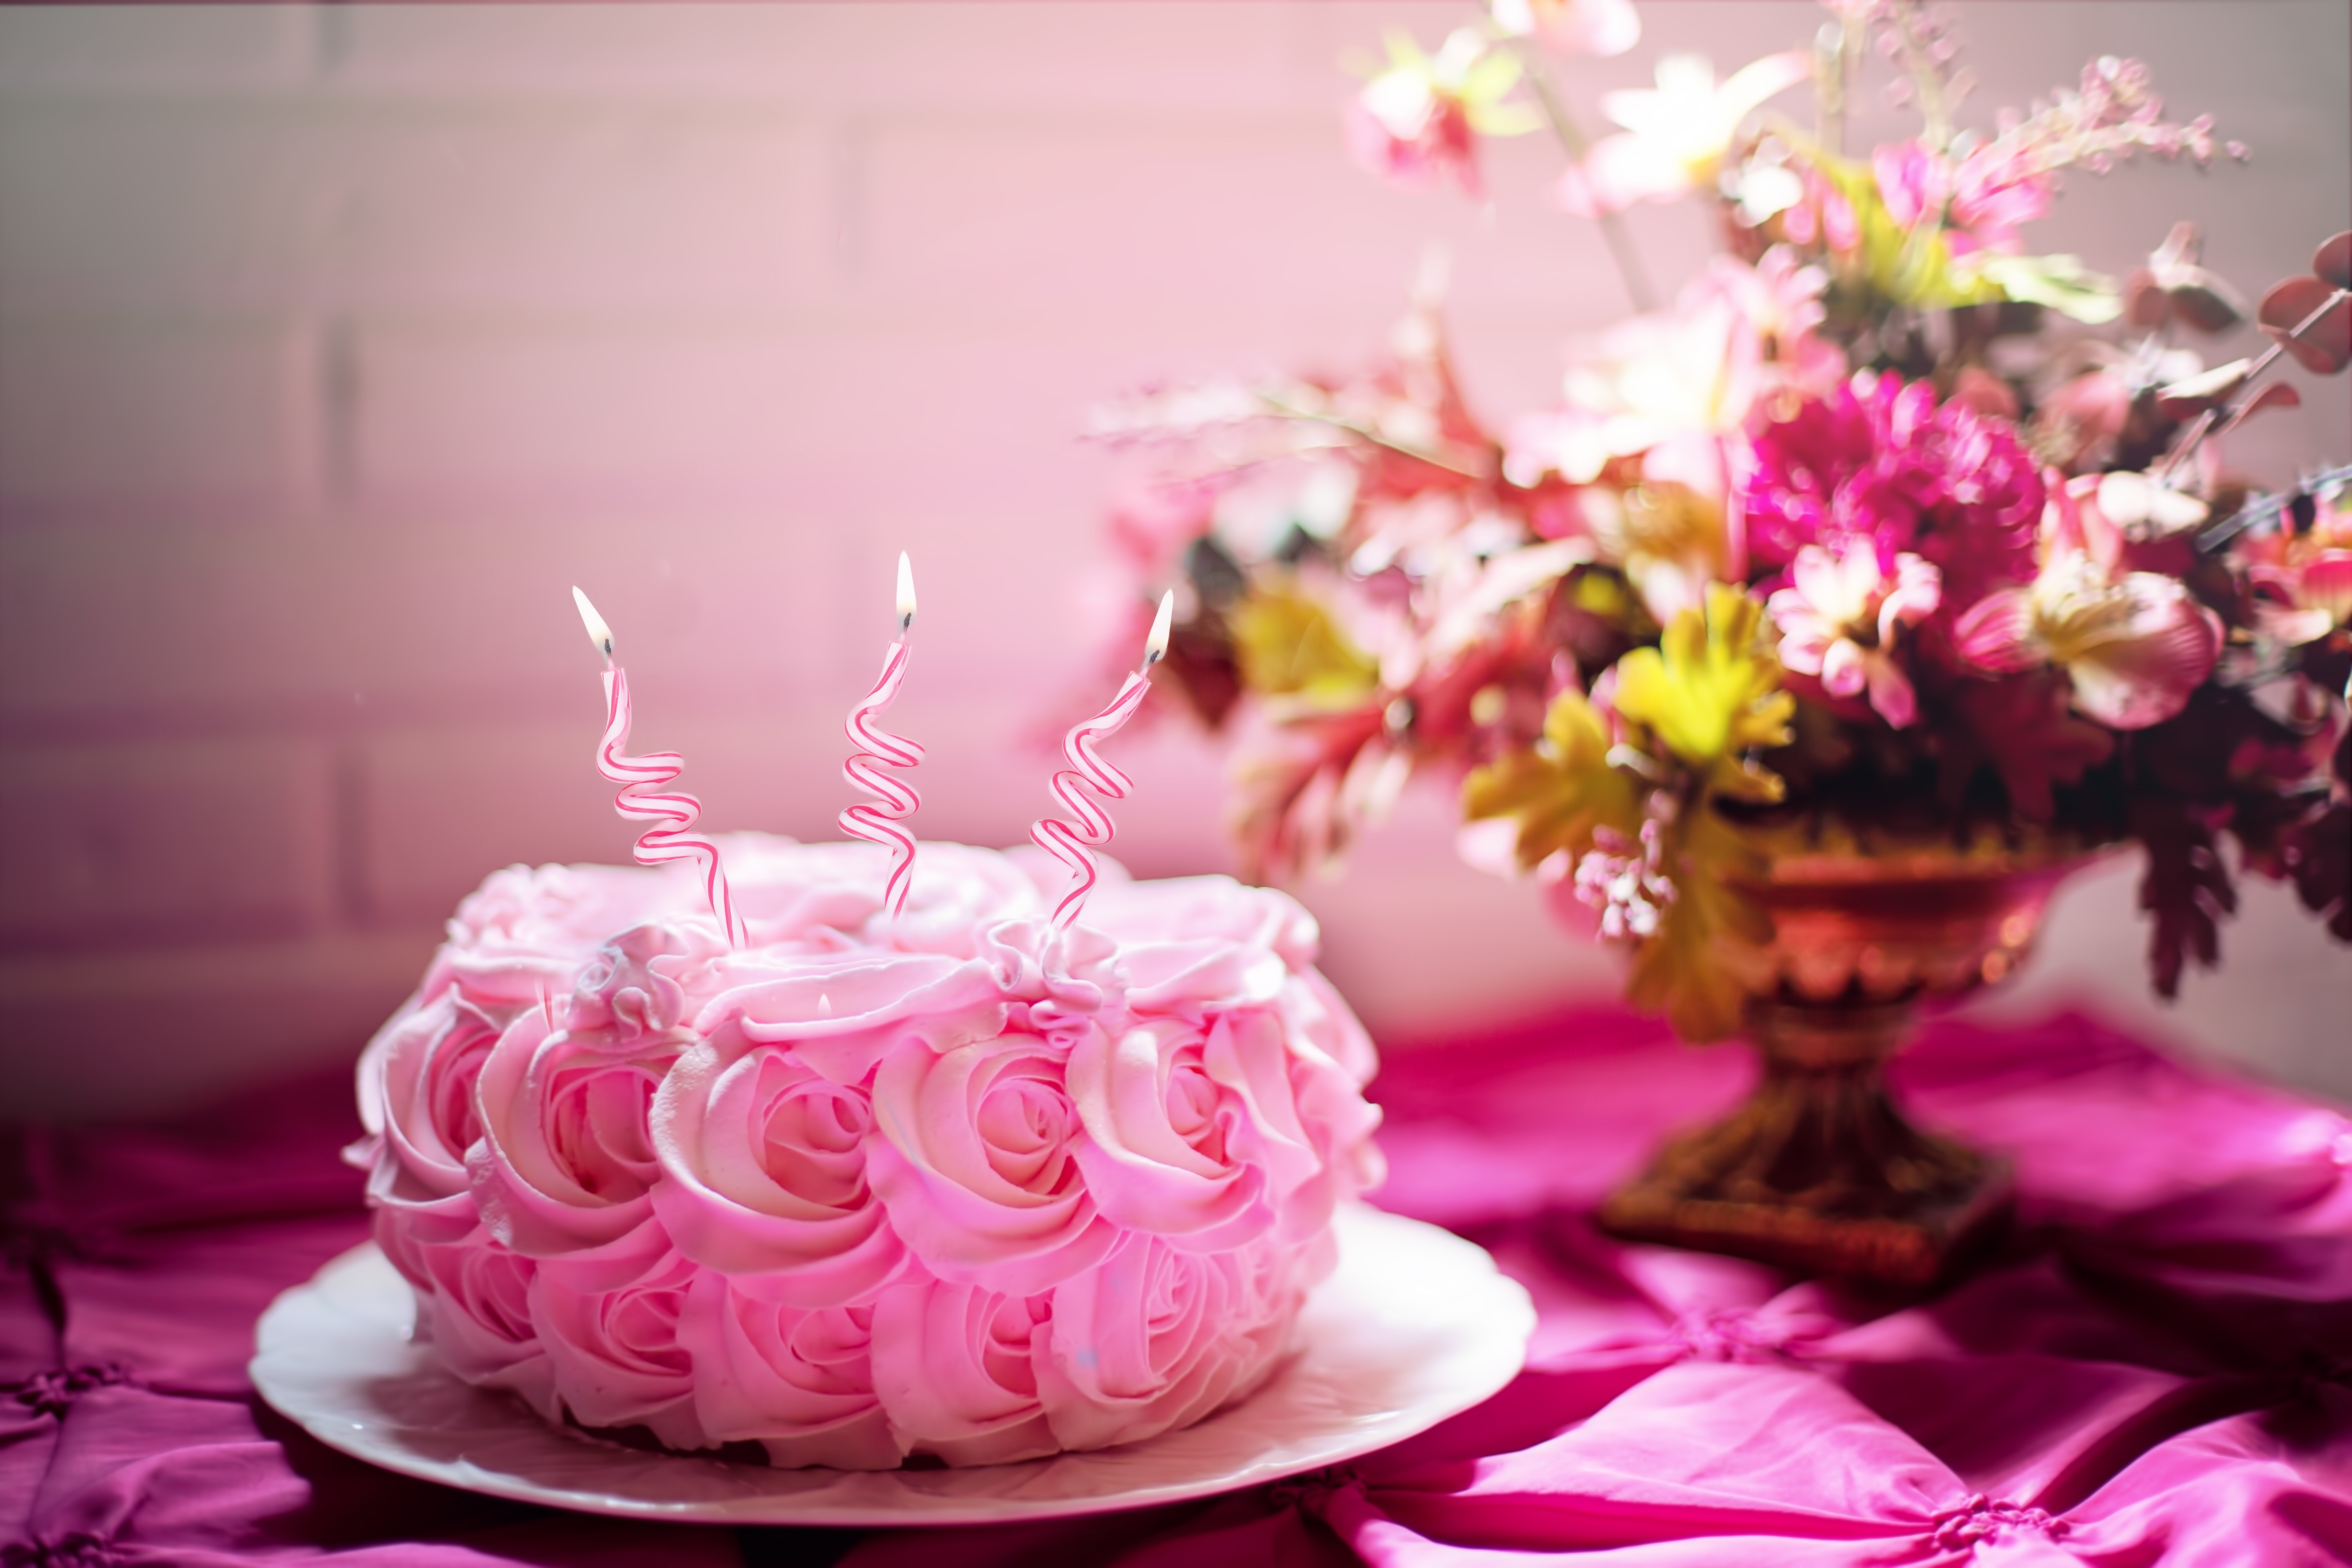 pink flower cake with candles and a bouquet